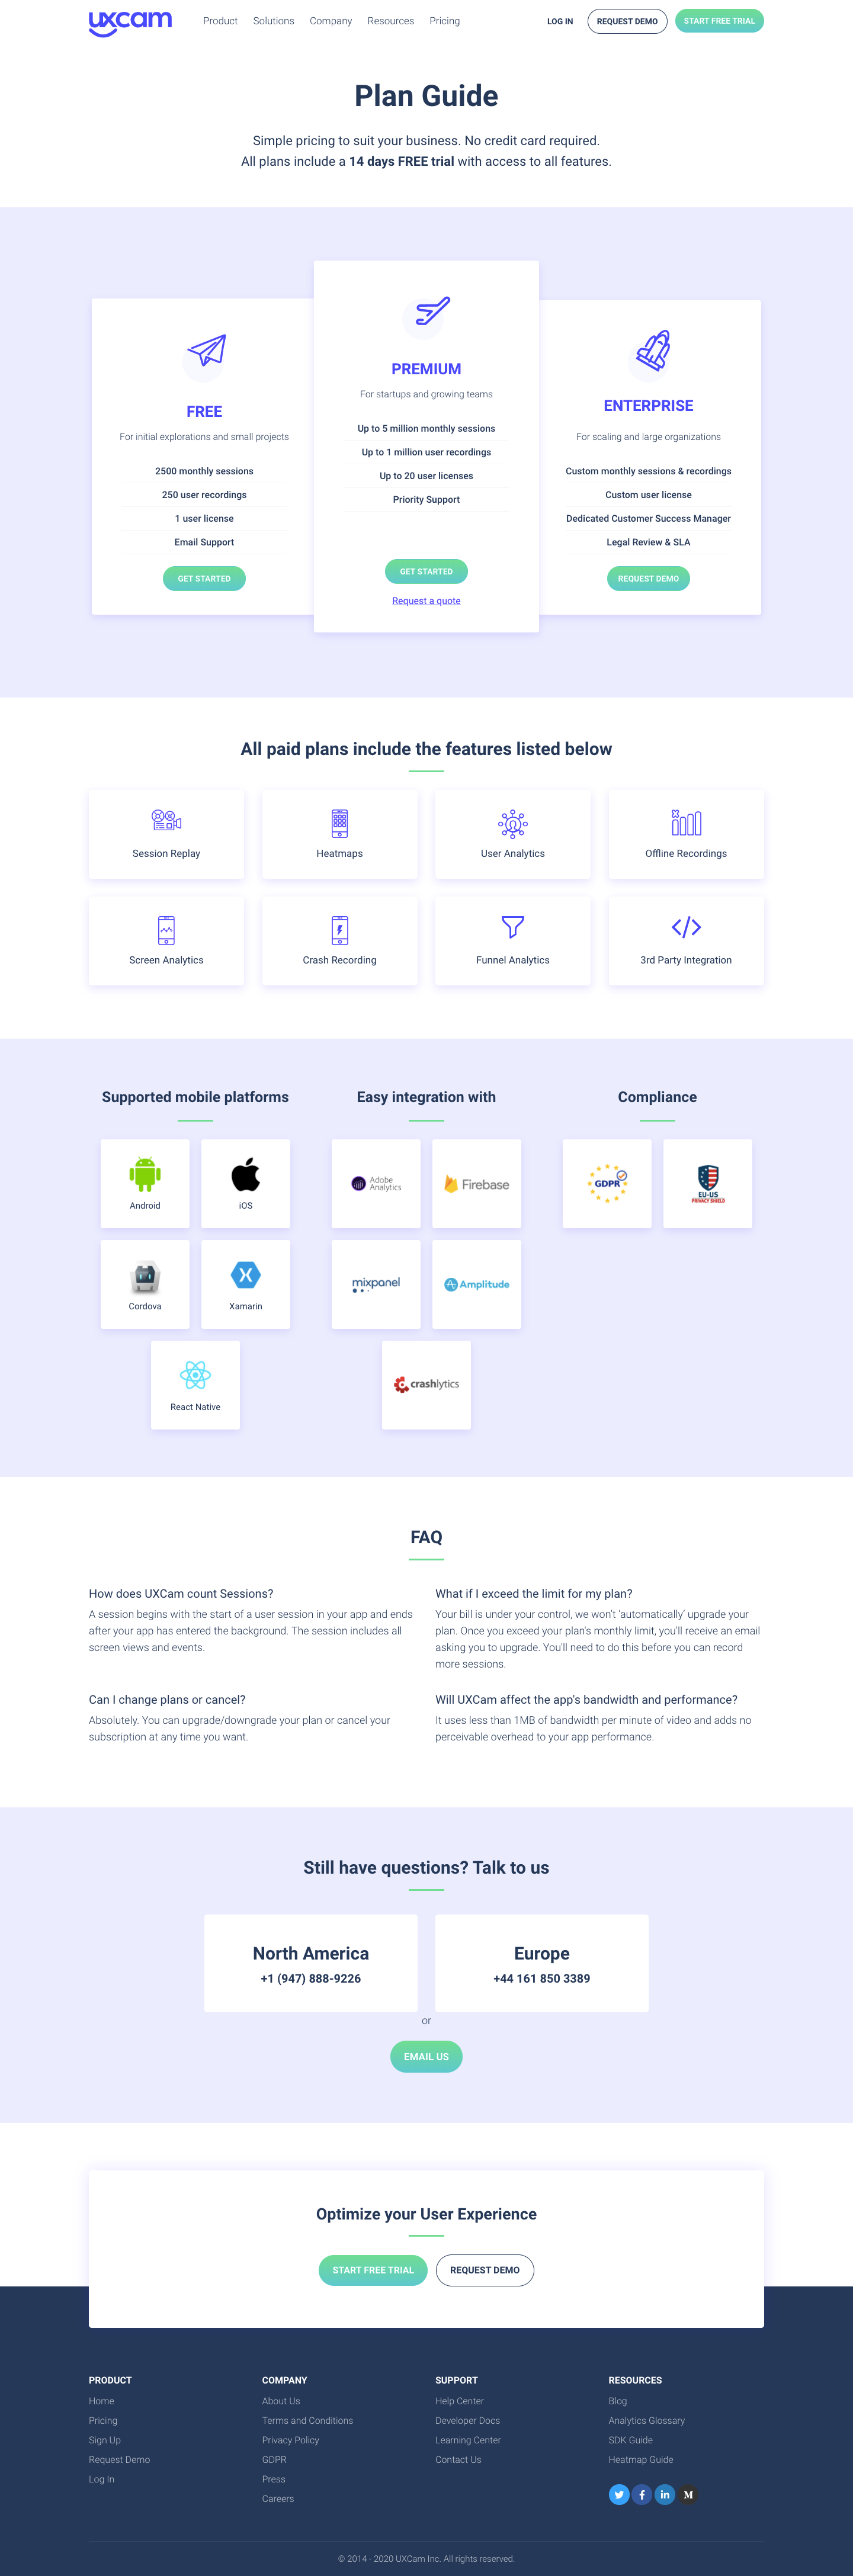 UXCam Pricing Page